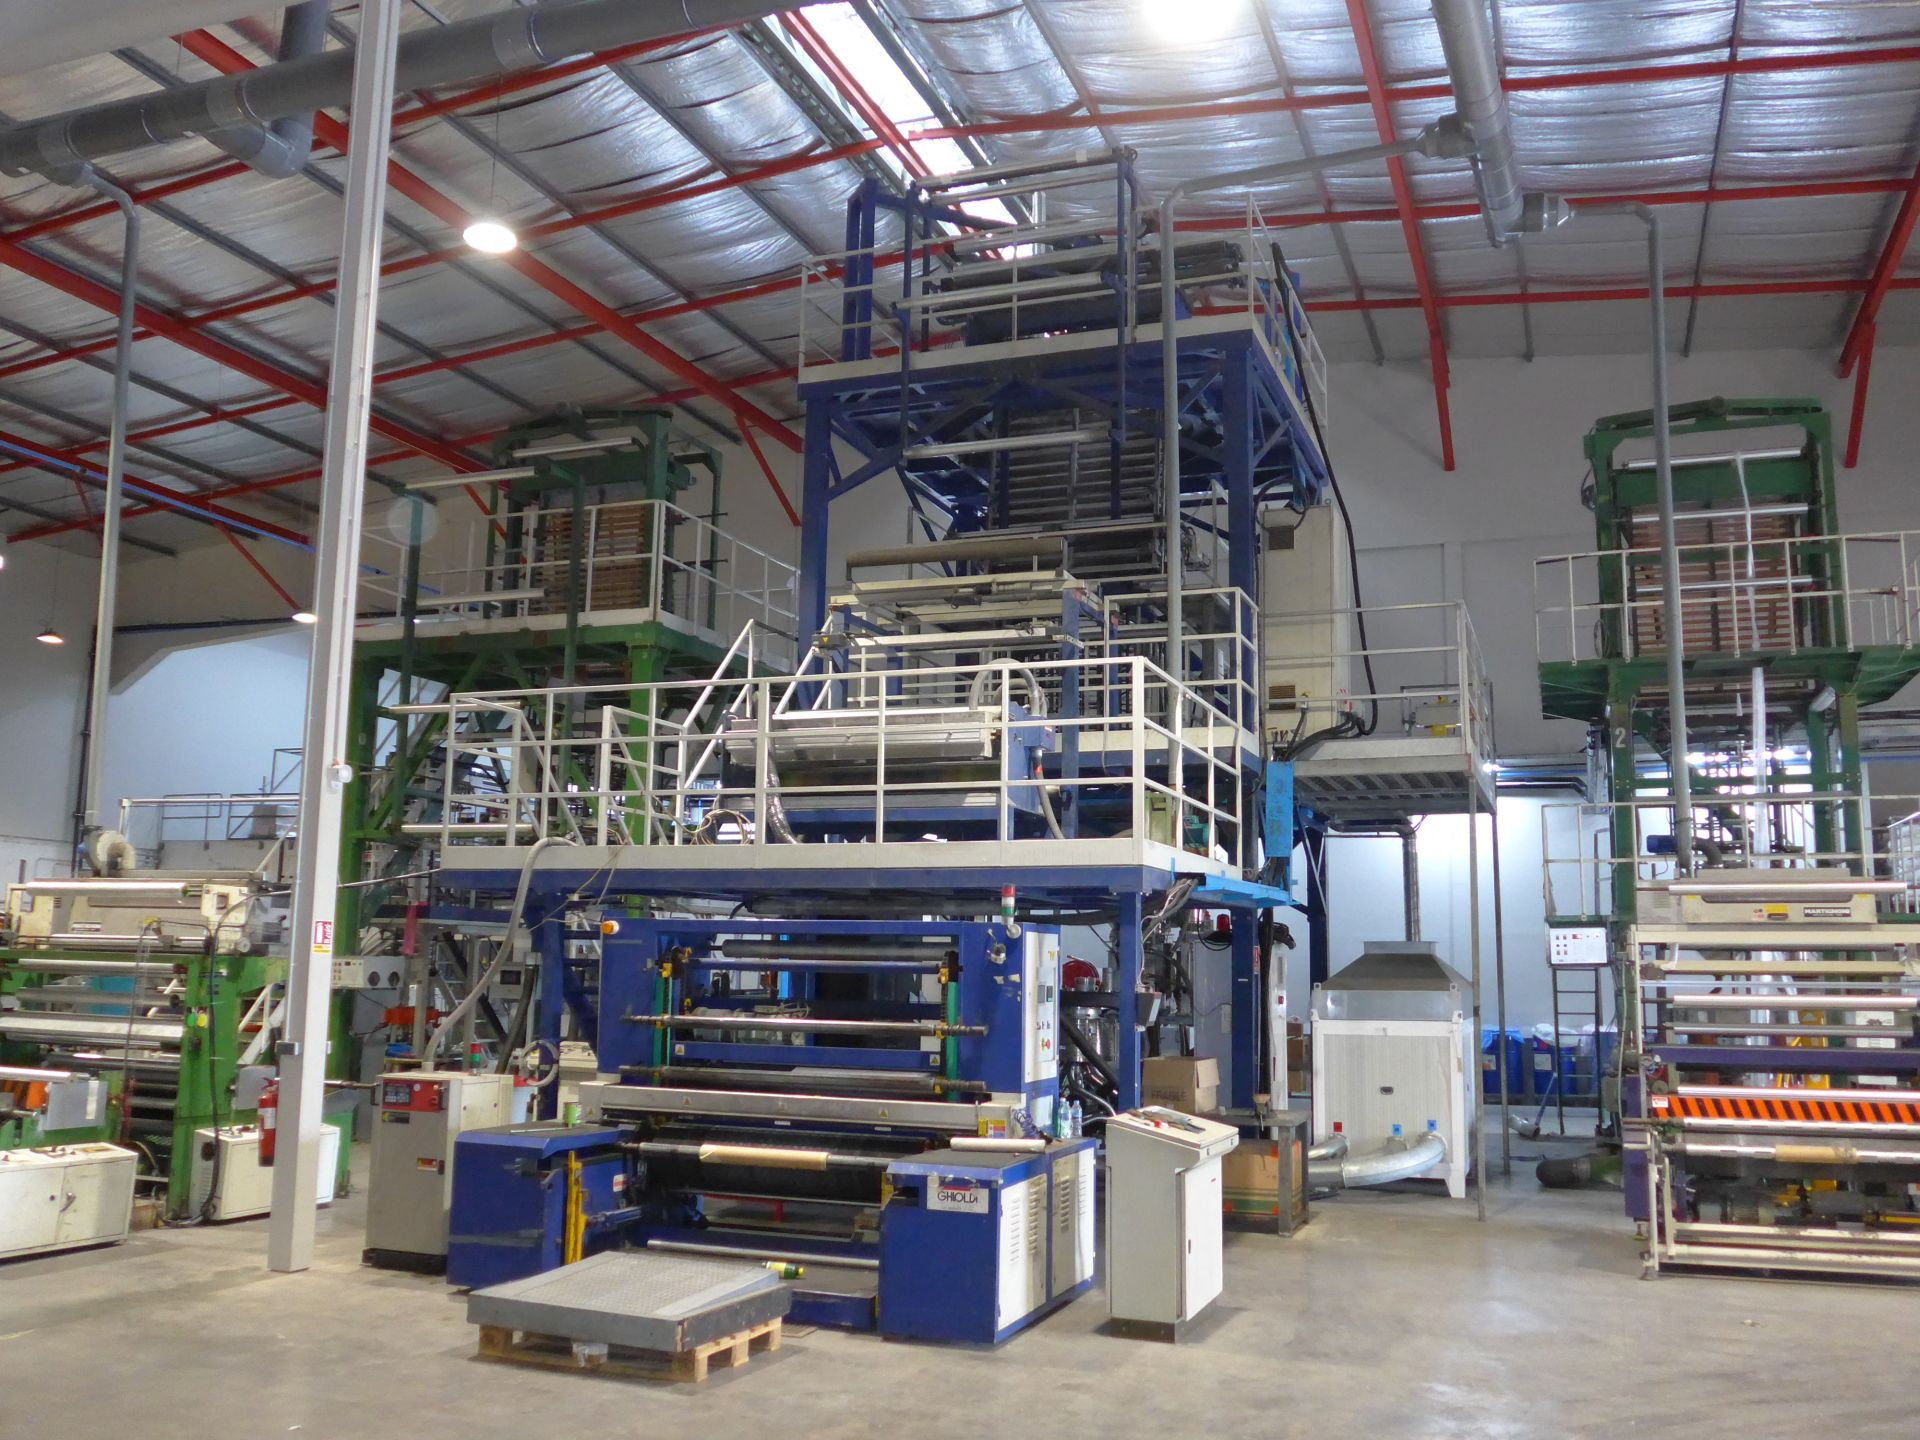 Industrial transfer packaging production plant